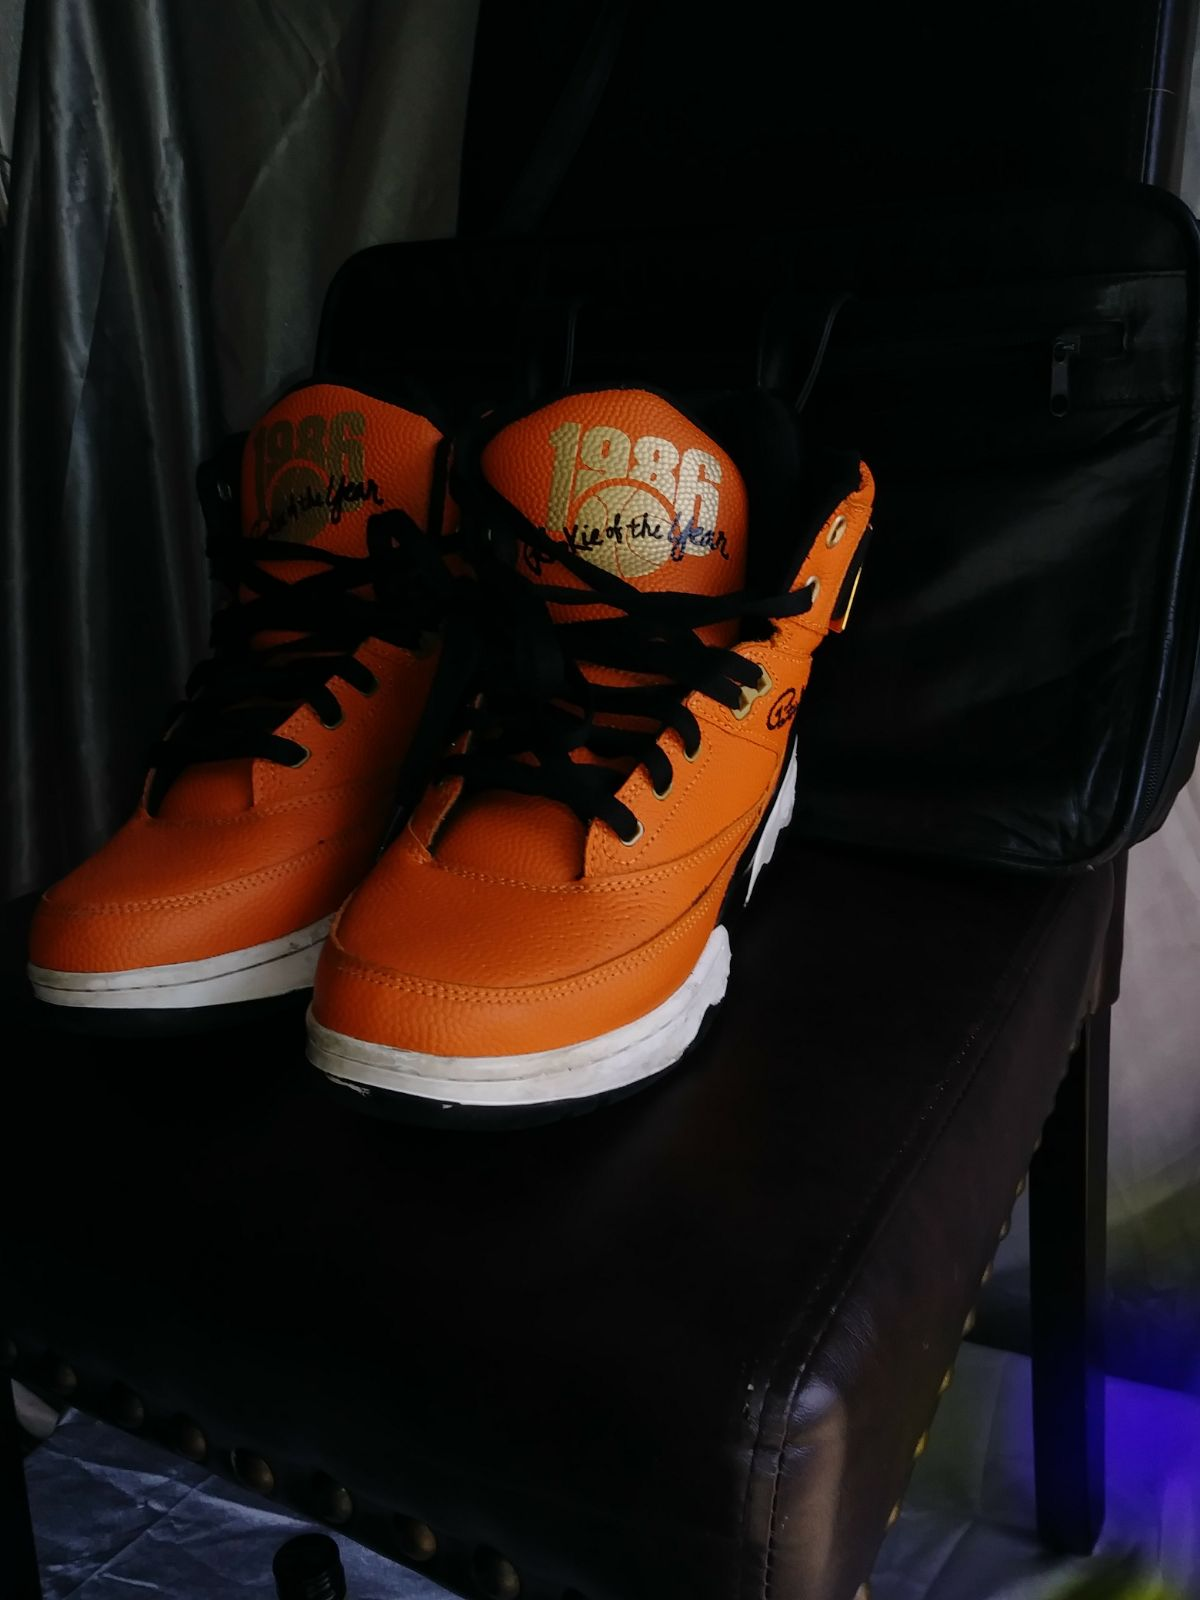 Patrick Ewing Rookie Of The Year Sneaker